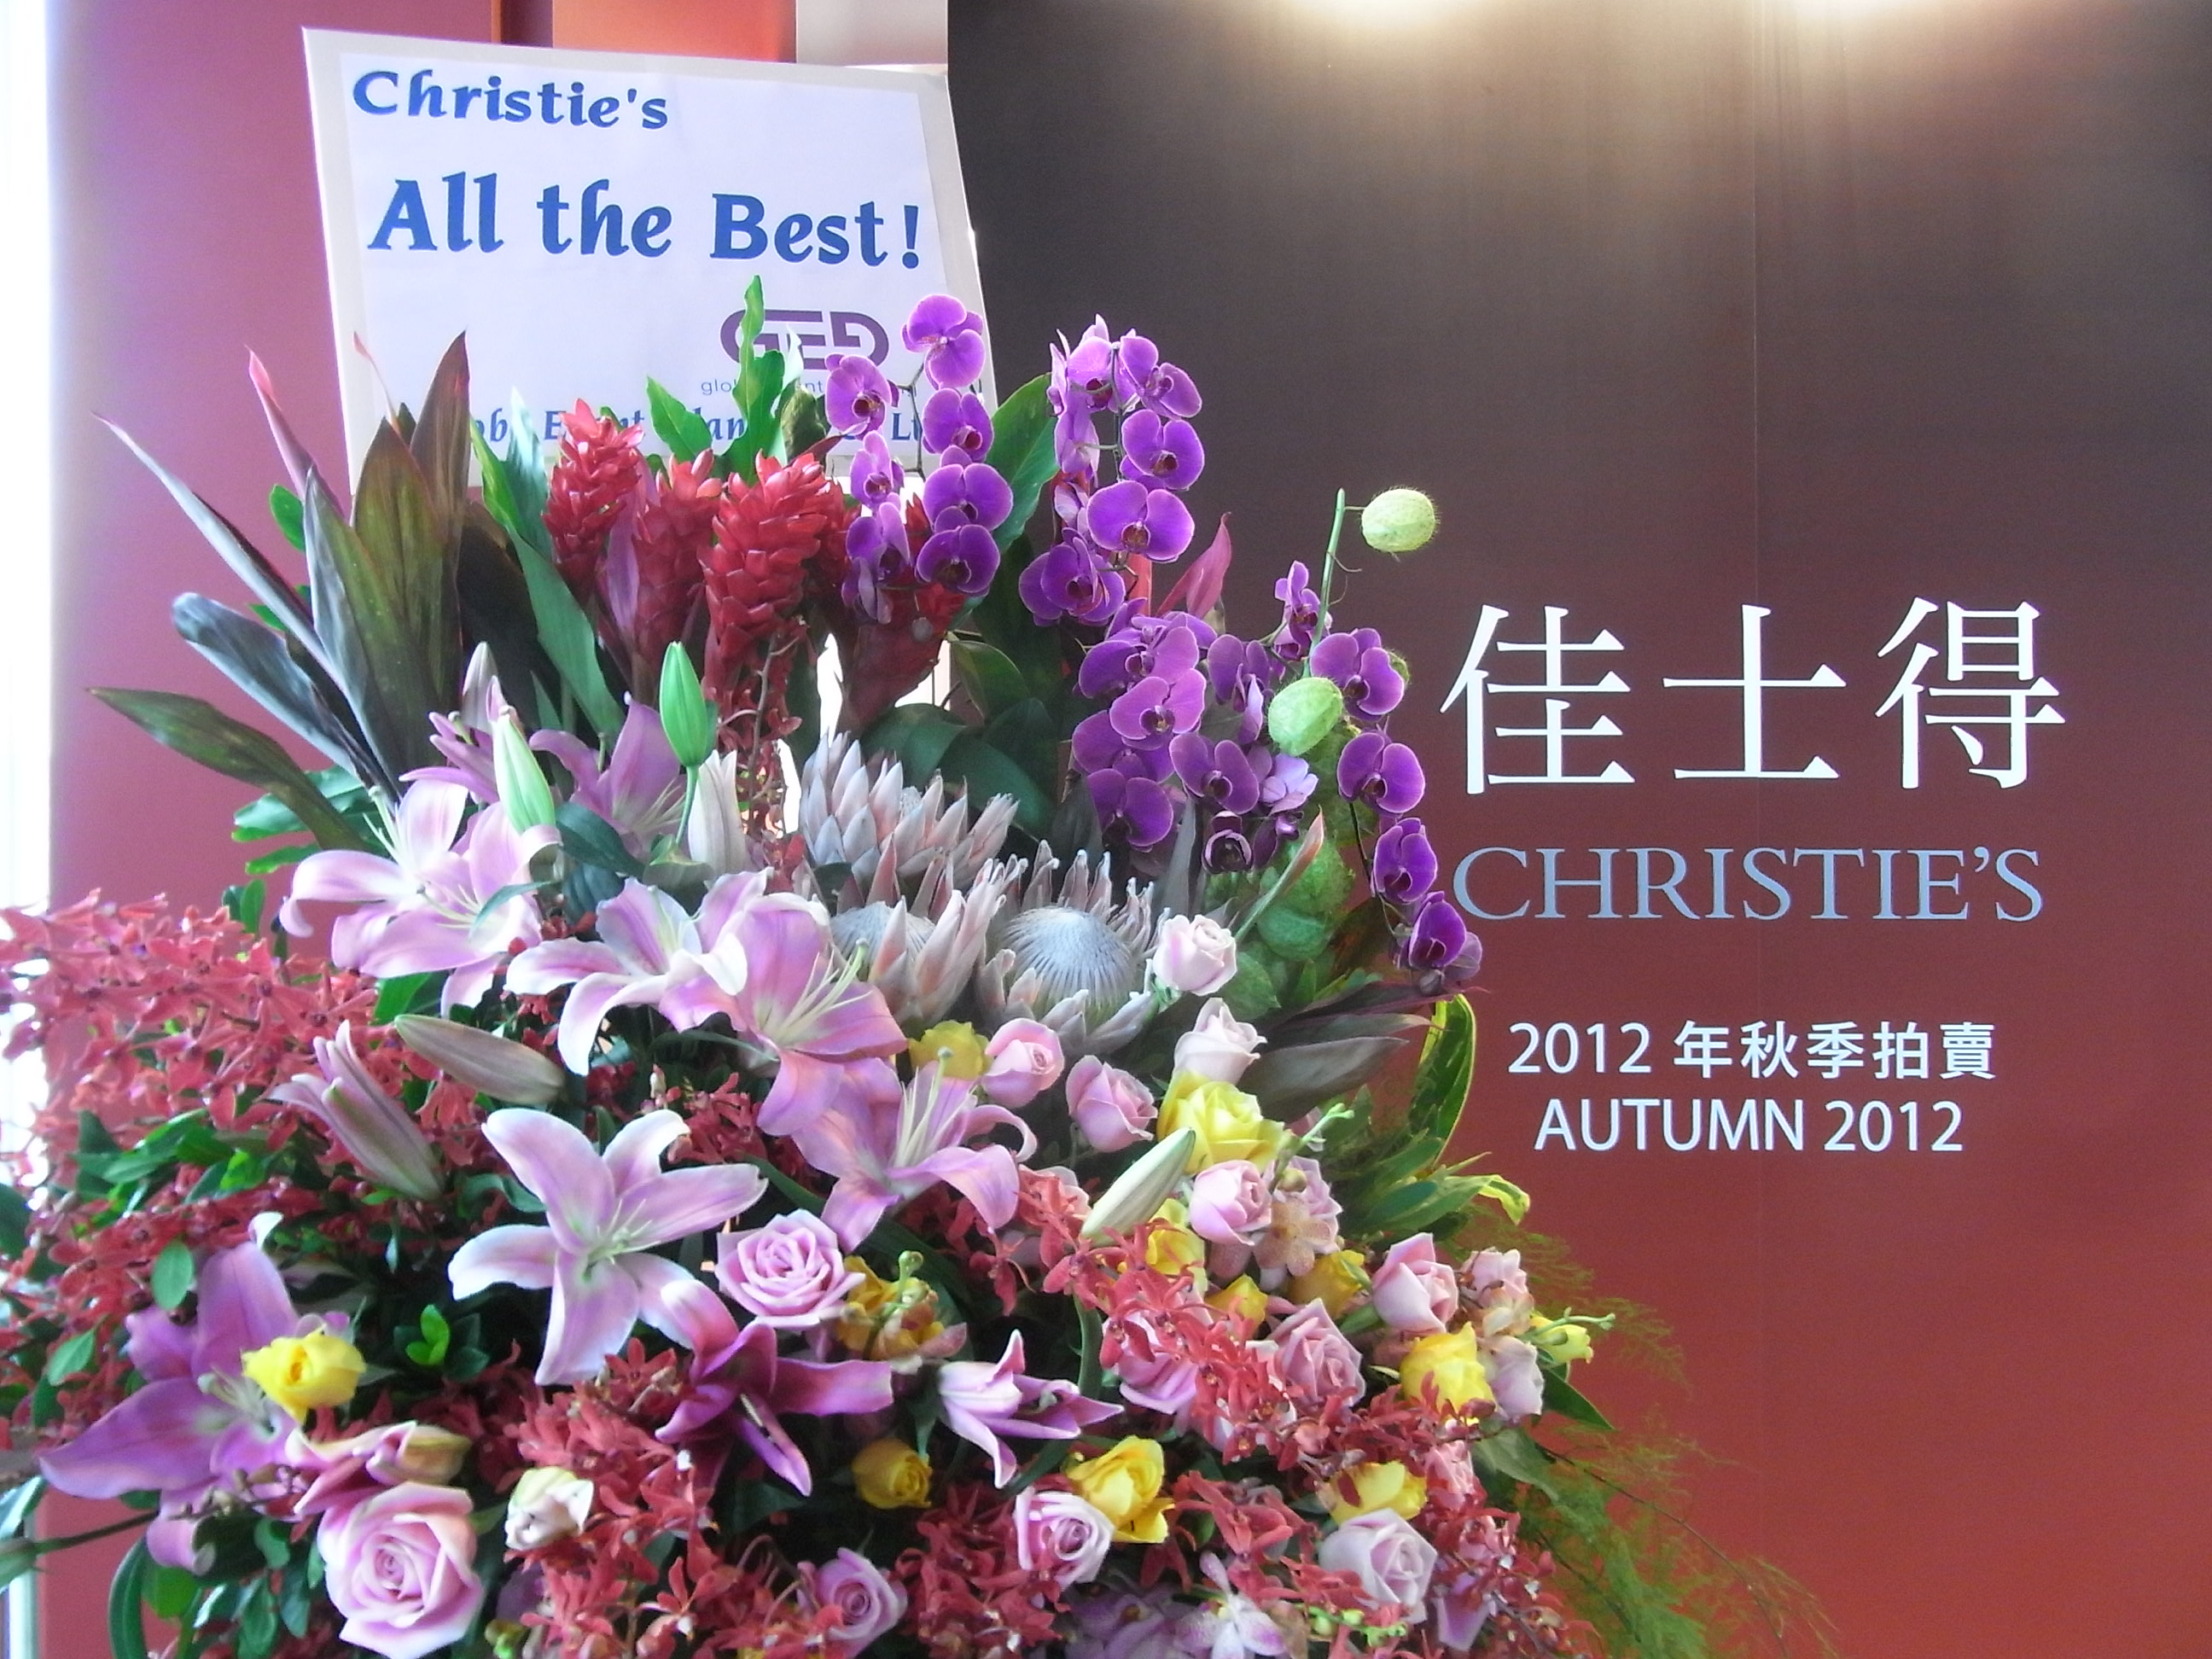 Filehkcec wan chai sign christies pre auction exhibition flower filehkcec wan chai sign christies pre auction exhibition flower all the best greeting kristyandbryce Image collections